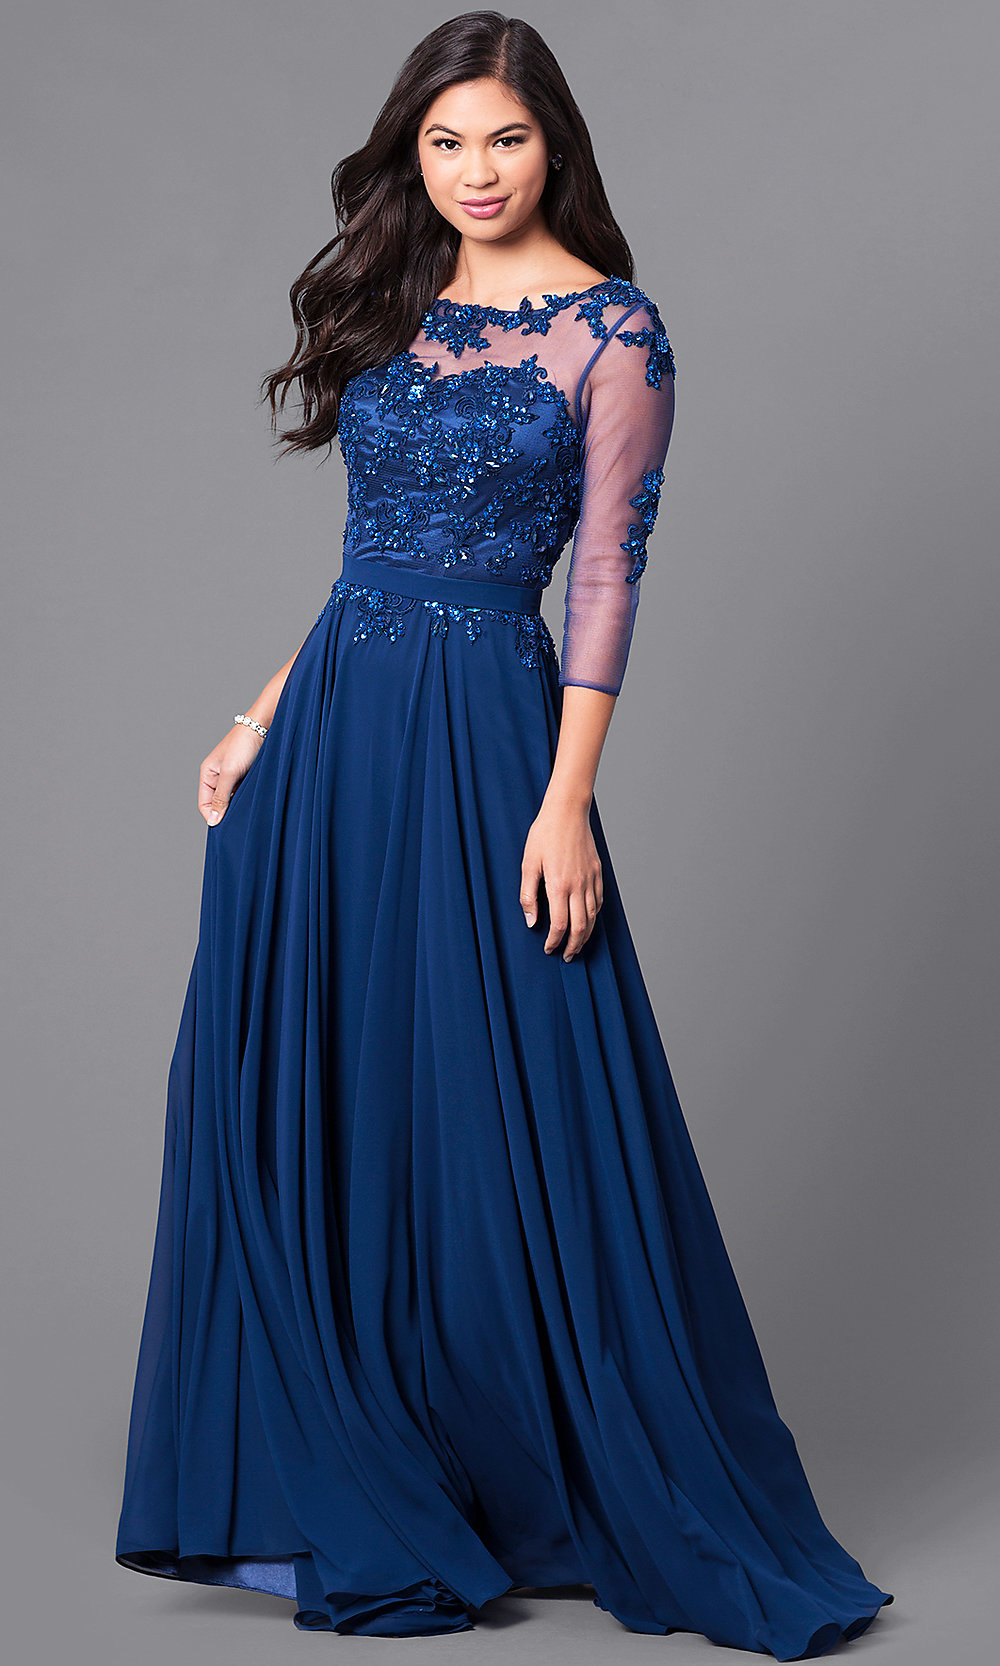 Long Prom Dress with Beaded-Lace Applique - PromGirl